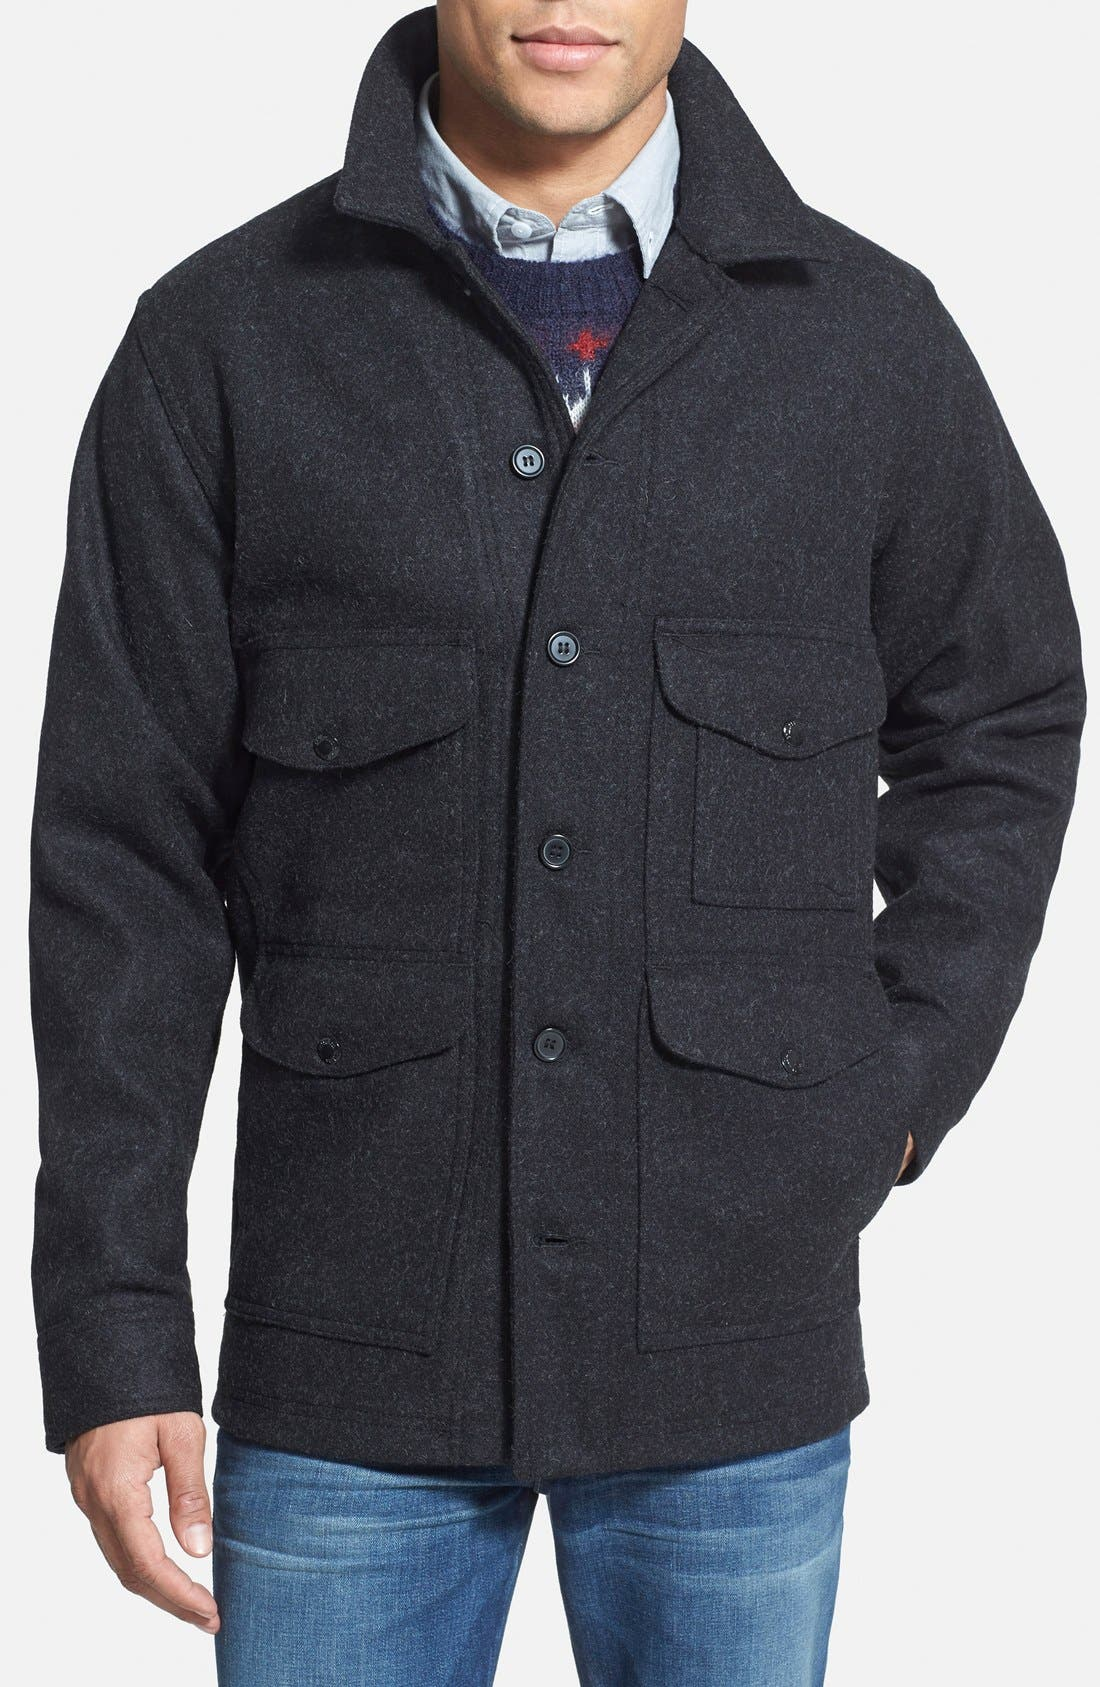 Filson 'Mackinaw Cruiser' Wool Jacket